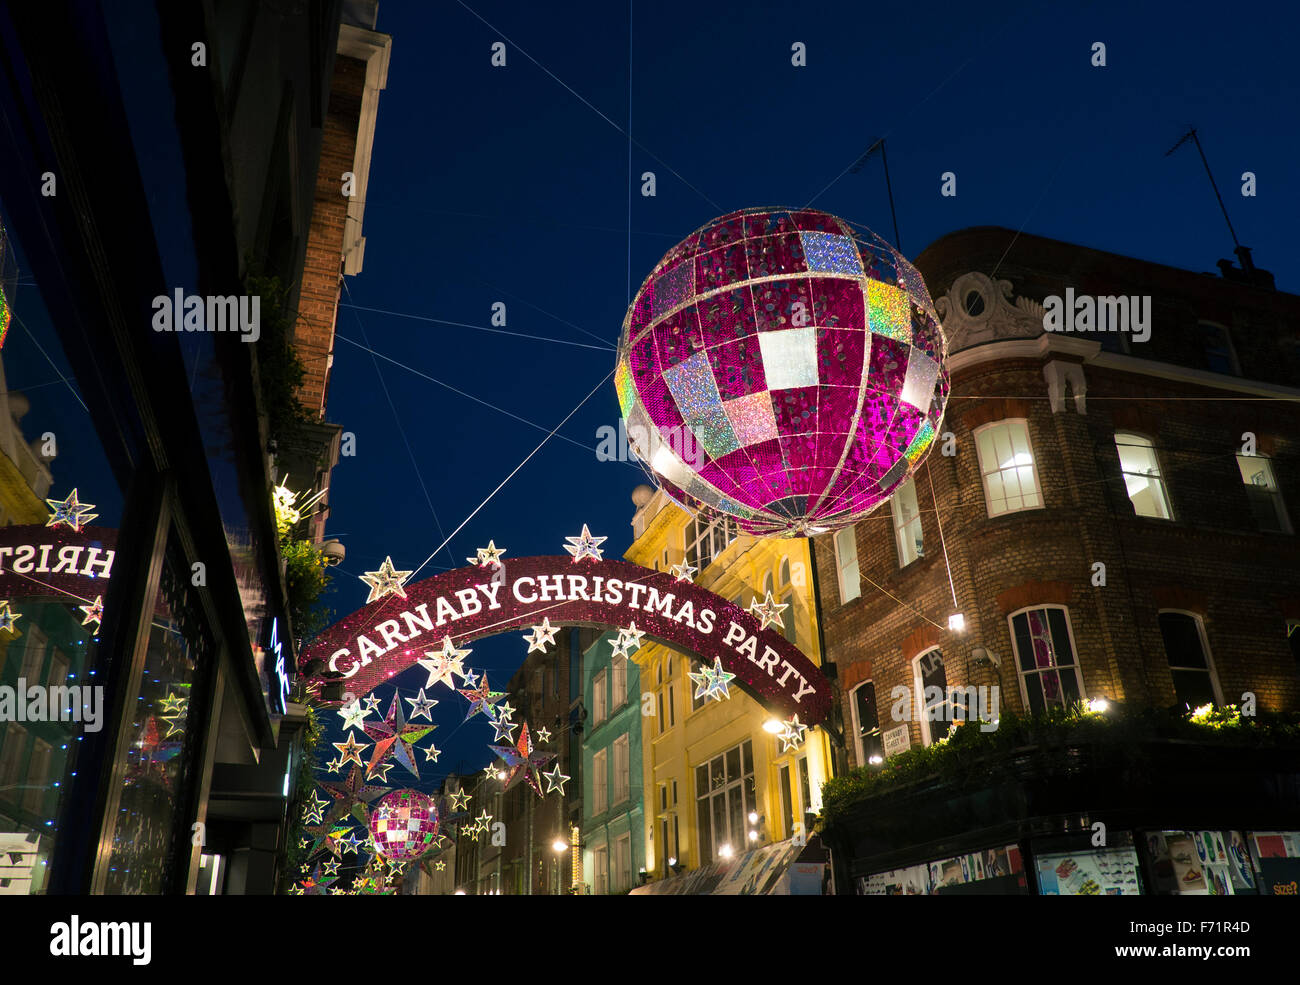 Christmas lights in Carnaby Street in the West End, London, UK - Stock Image